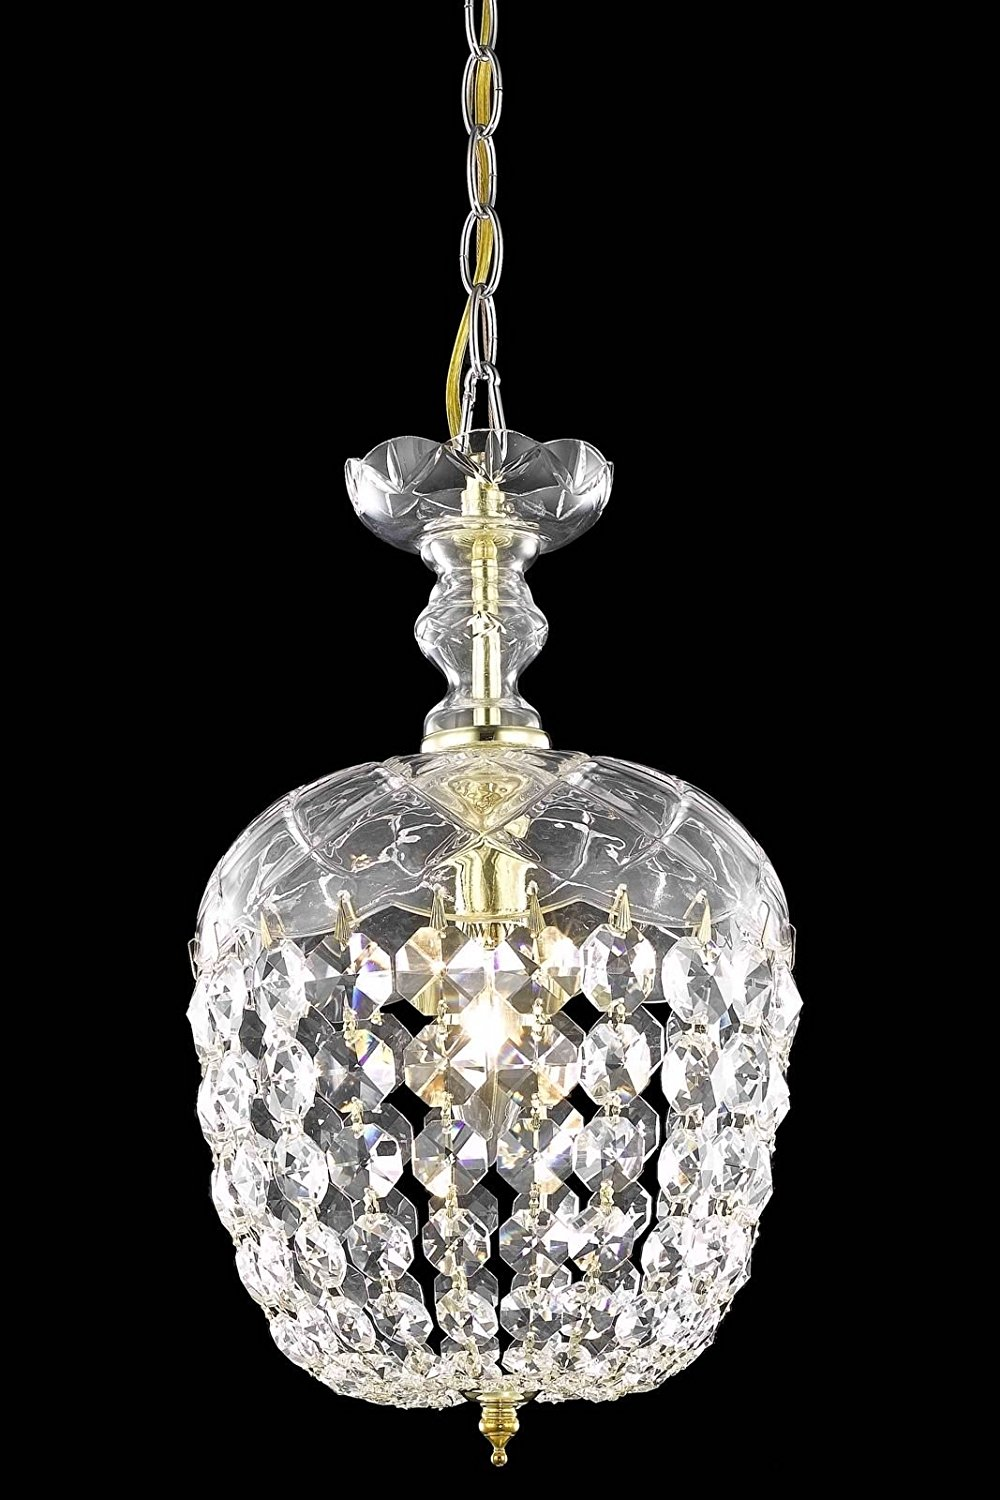 Cheap gold new empire chandelier find gold new empire chandelier get quotations usa warehouse 1 light 8x135 empire style gold arubaitofo Gallery